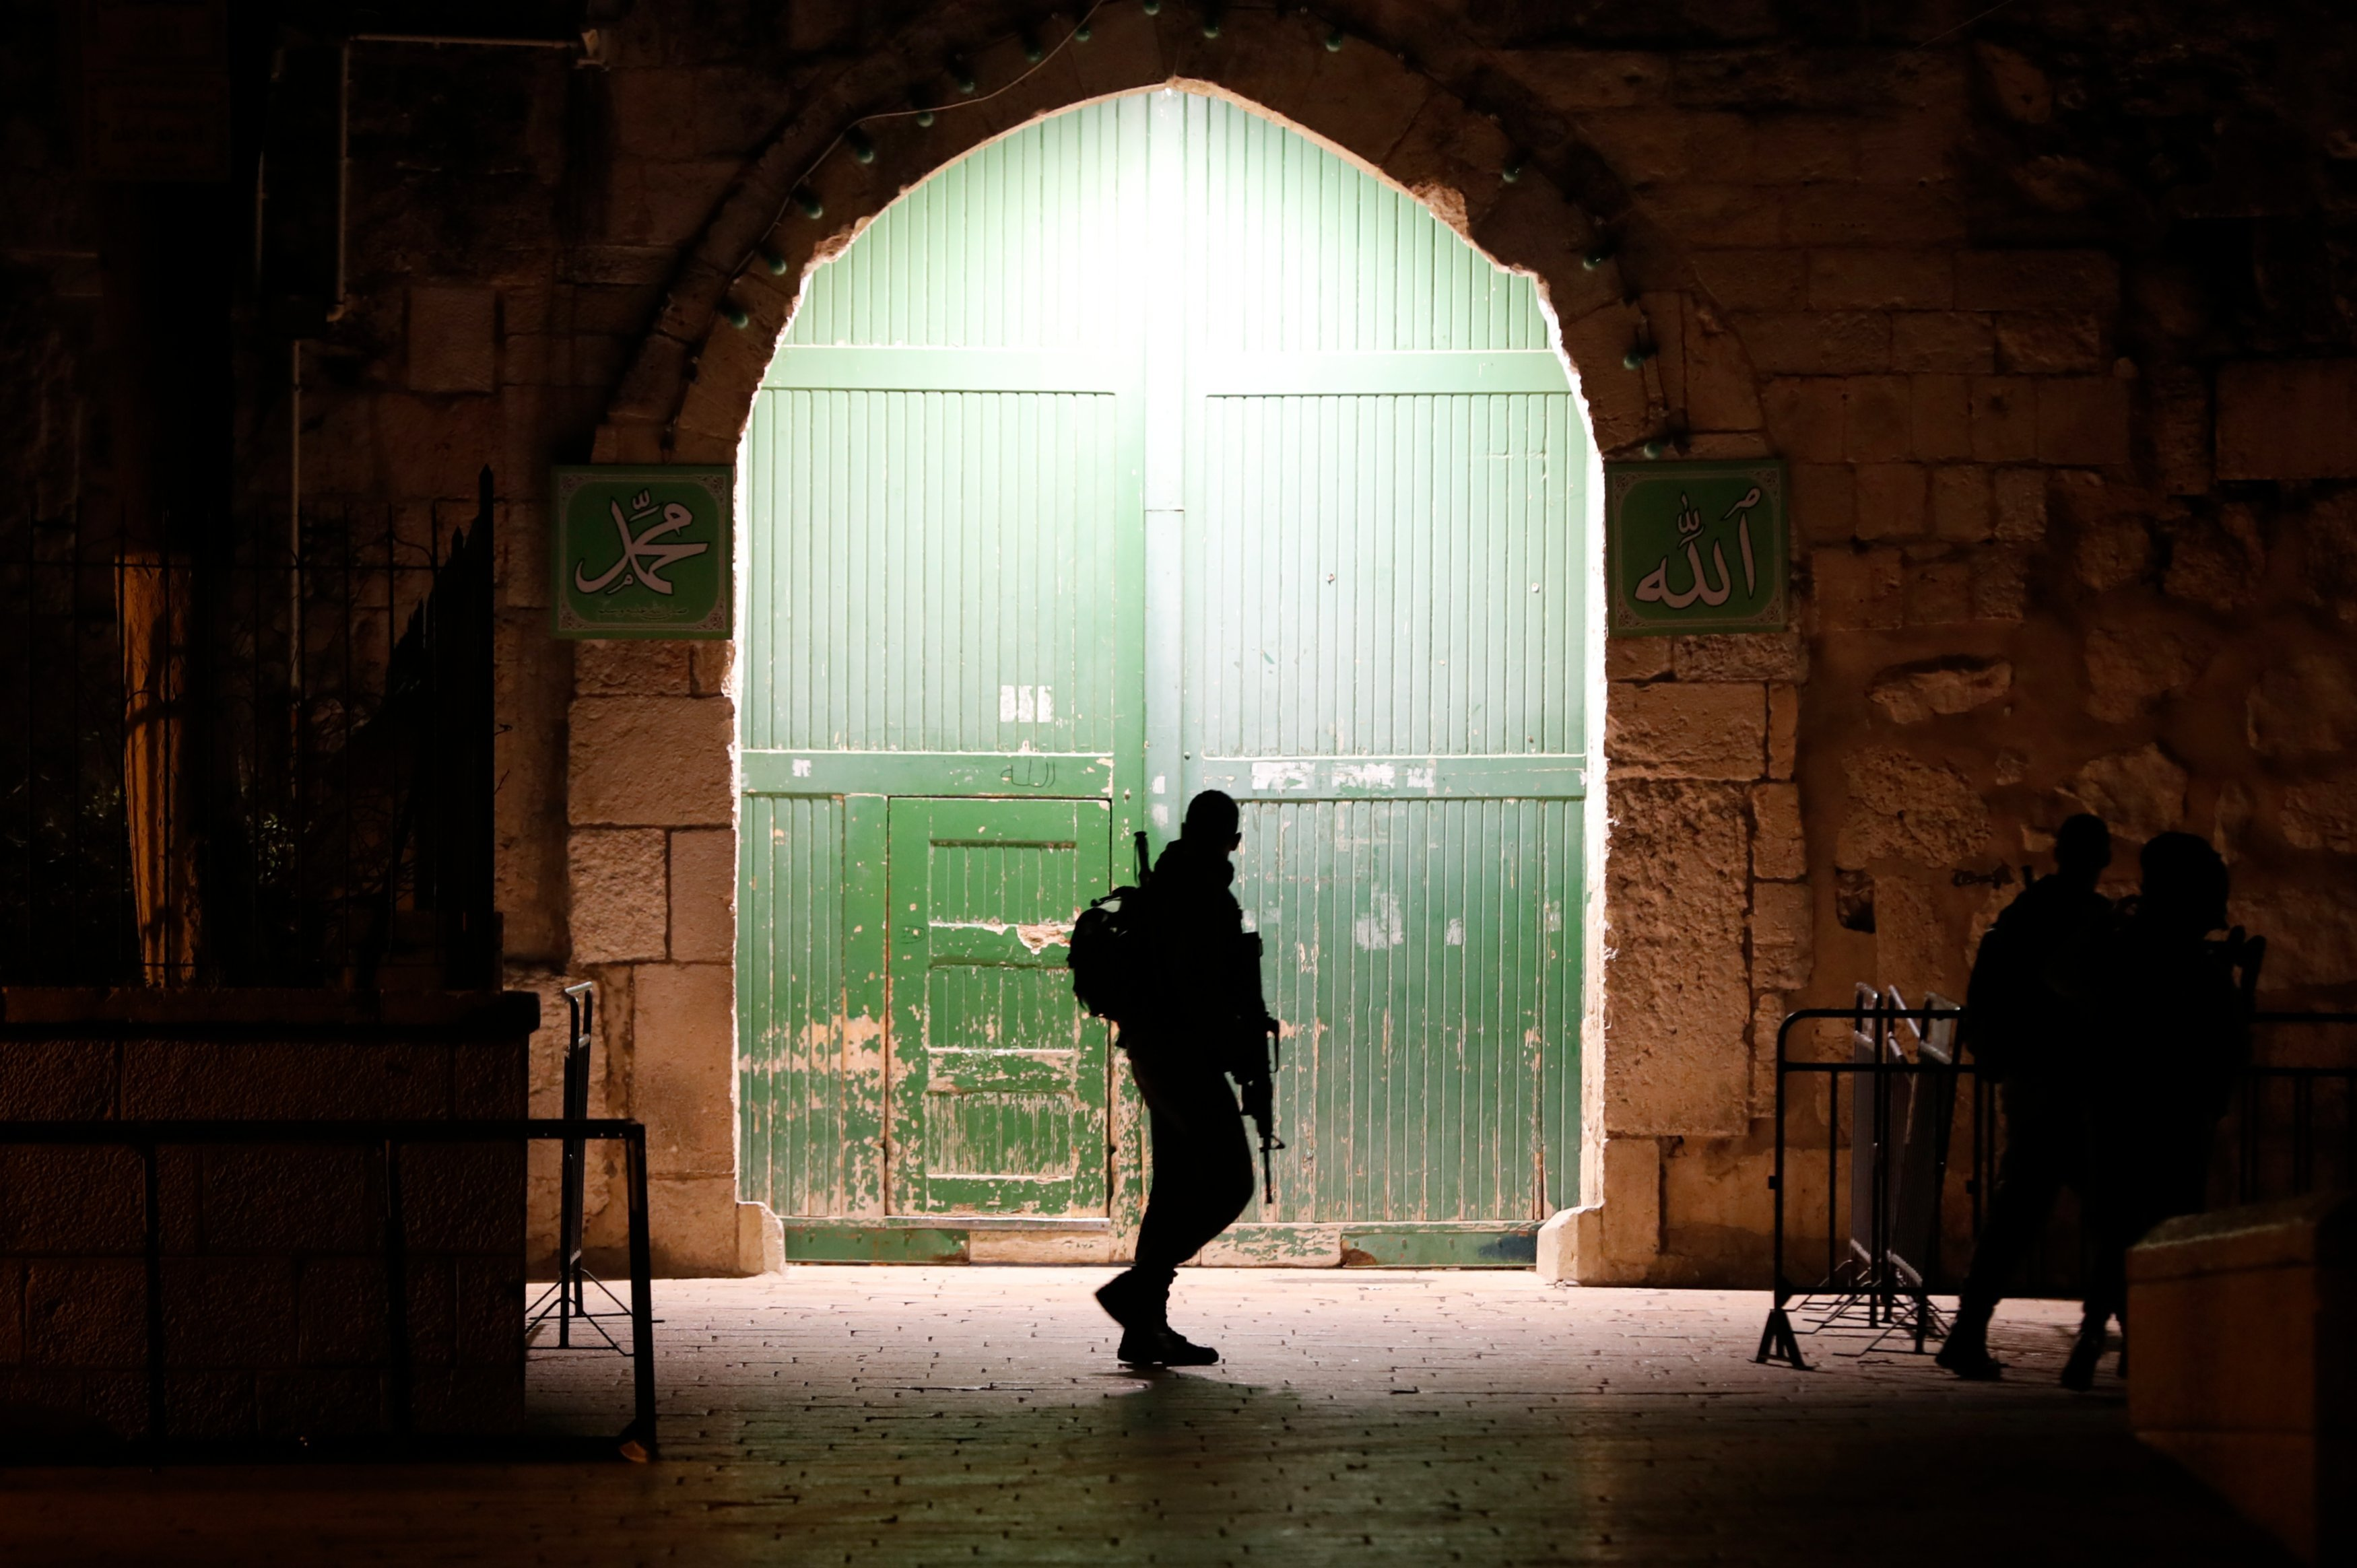 Israeli border guards patrol an entrance to the al-Aqsa compound in Jerusalem's Old City on 19 February 2019 (AFP)